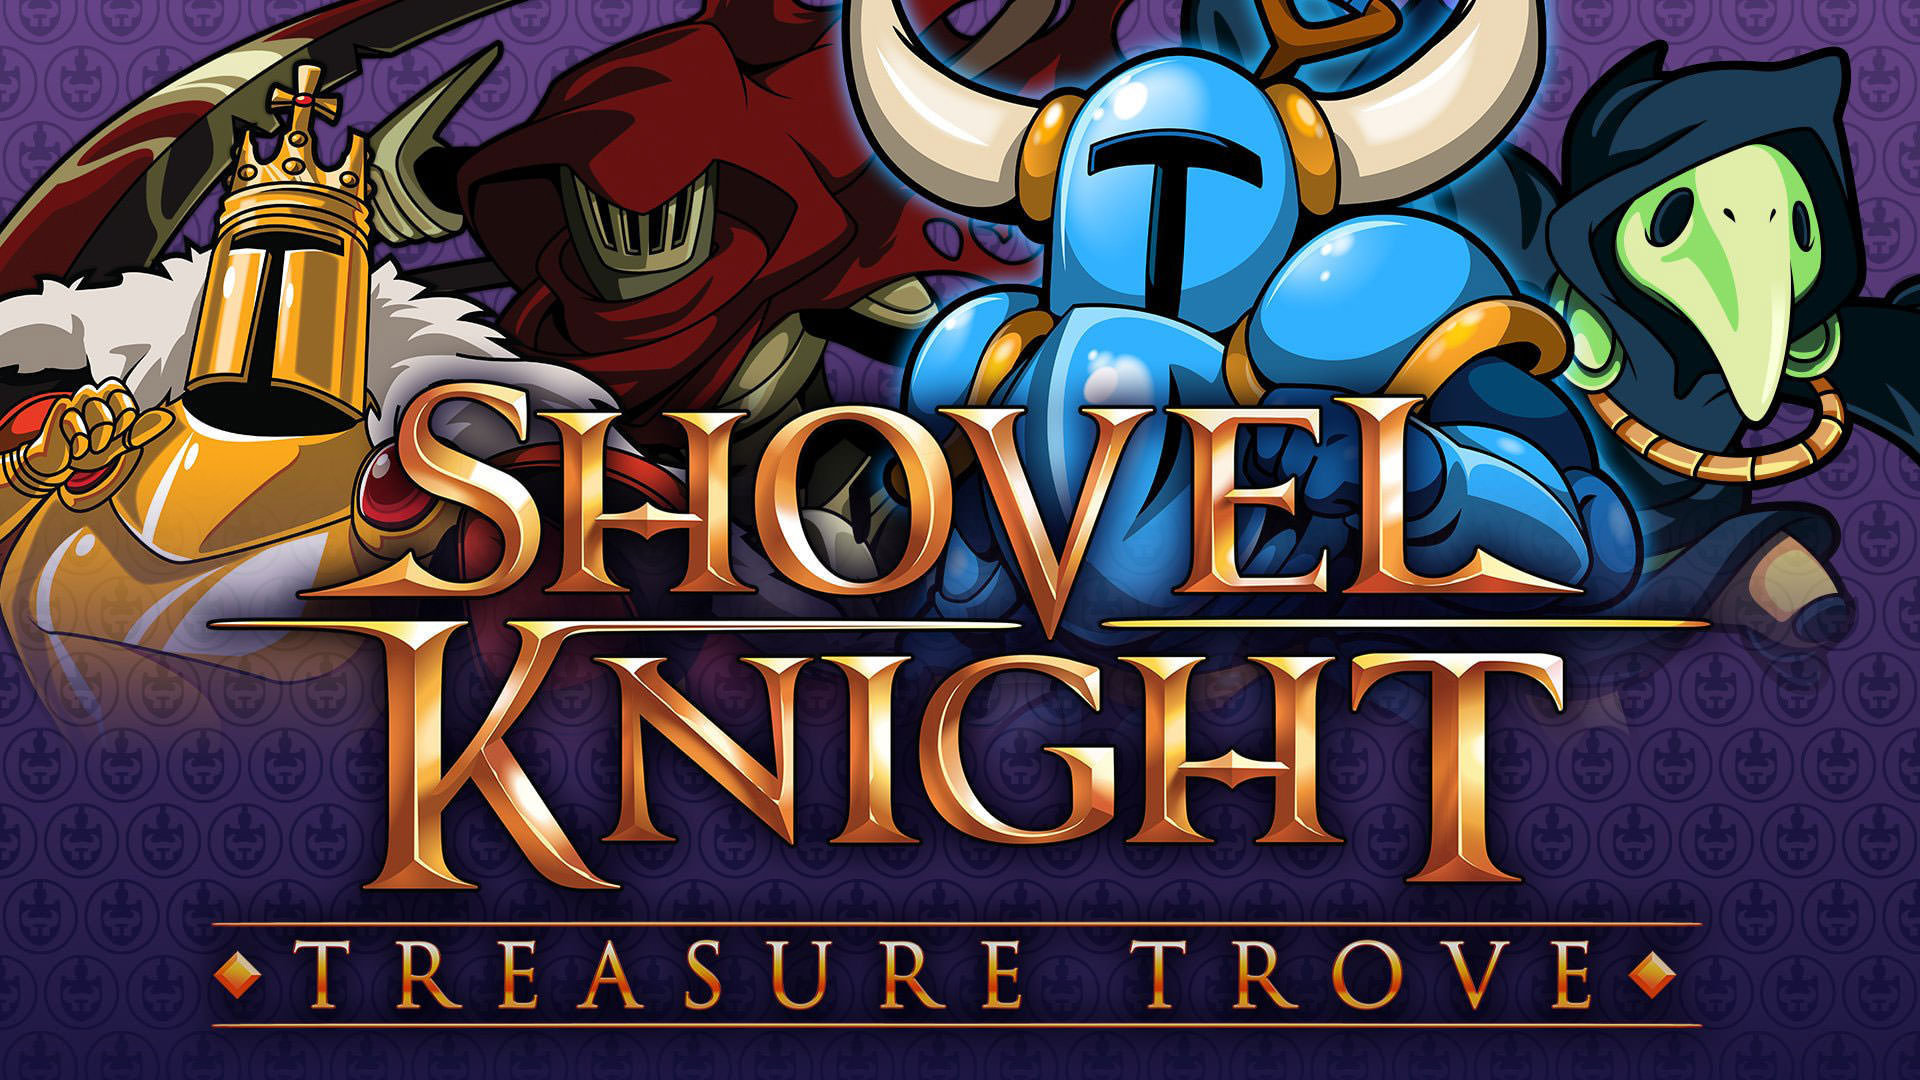 بررسی بازی Shovel Knight: Treasure Trove